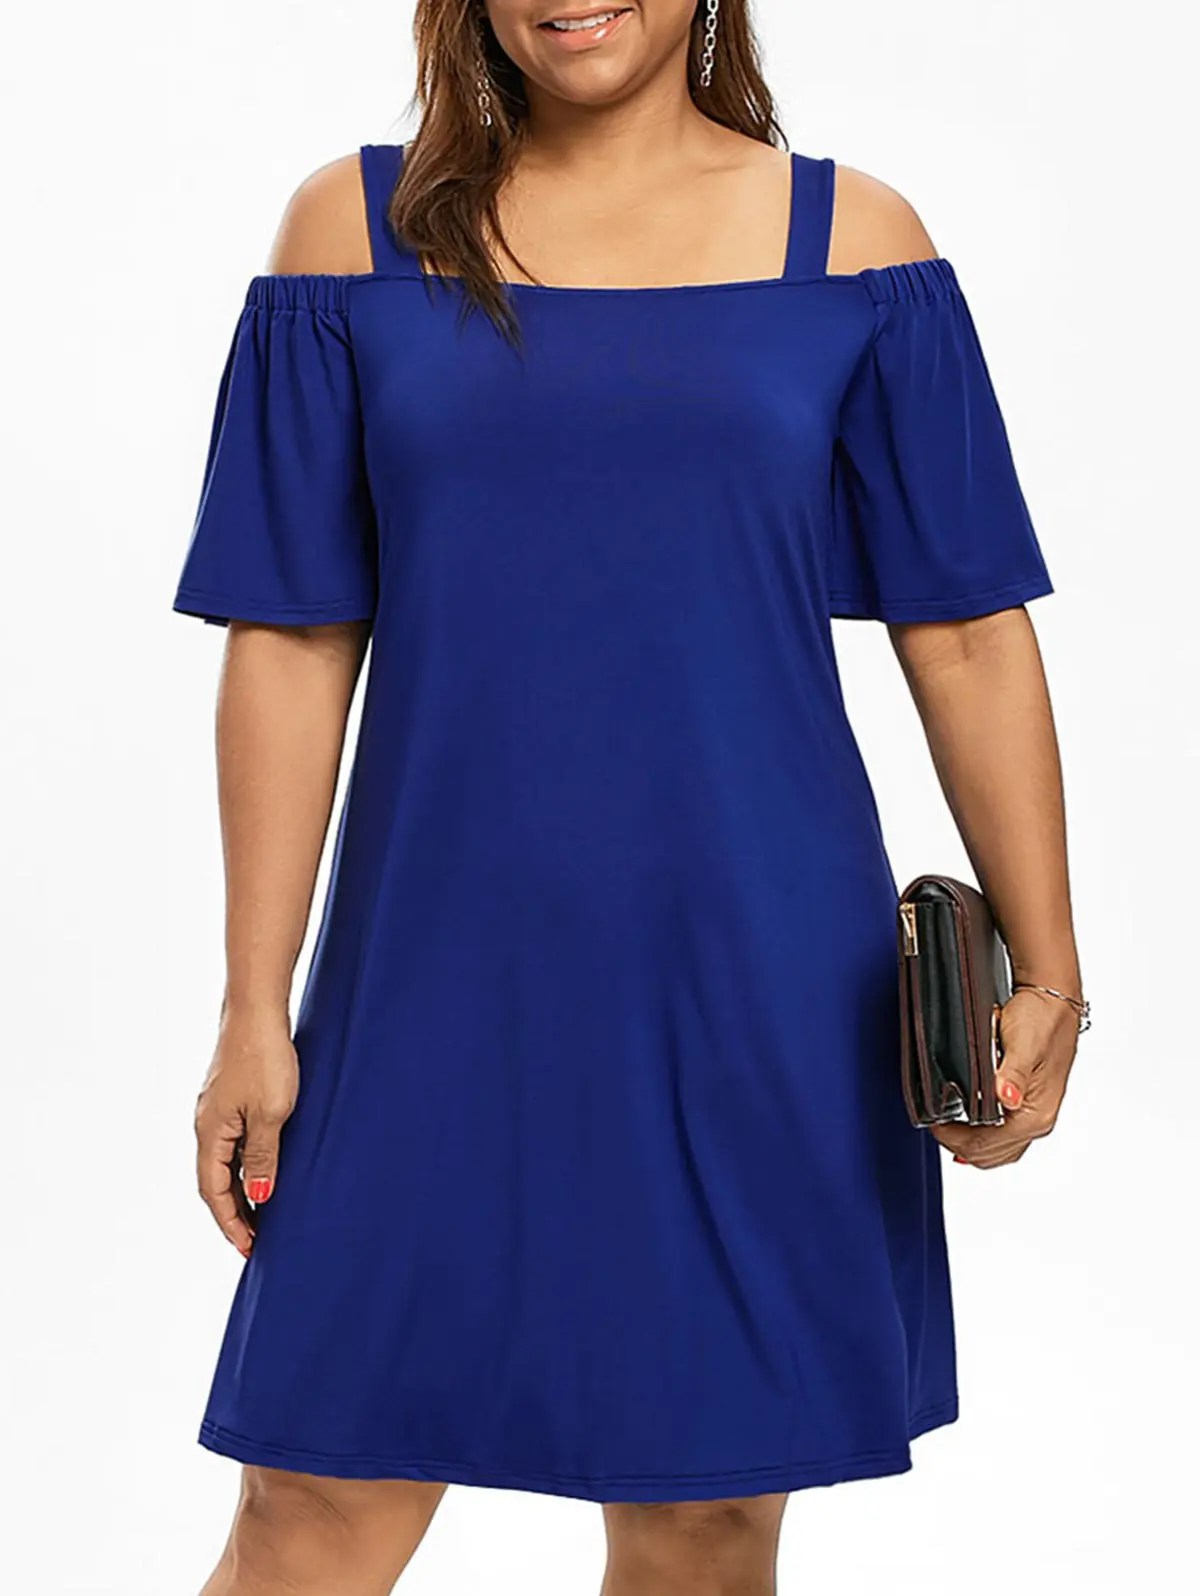 2018 Cold Shoulder Half Sleeve Plus Size Dress In Blue 5xl